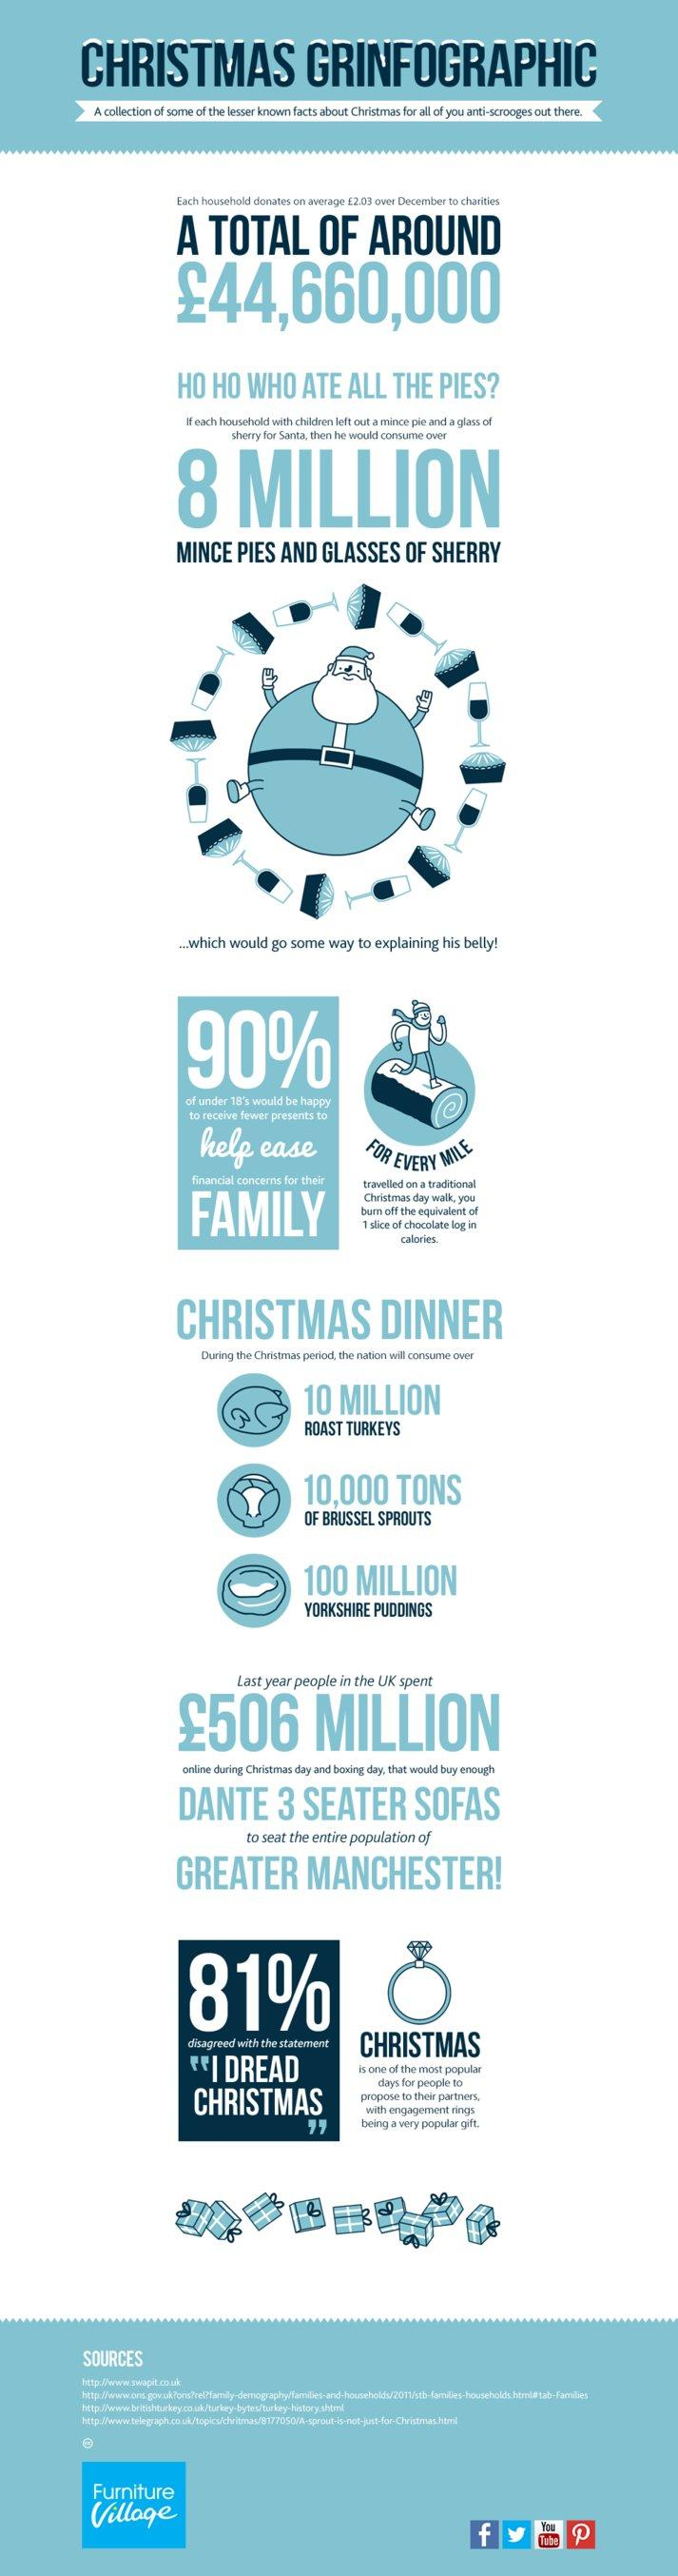 christmas grinfographic